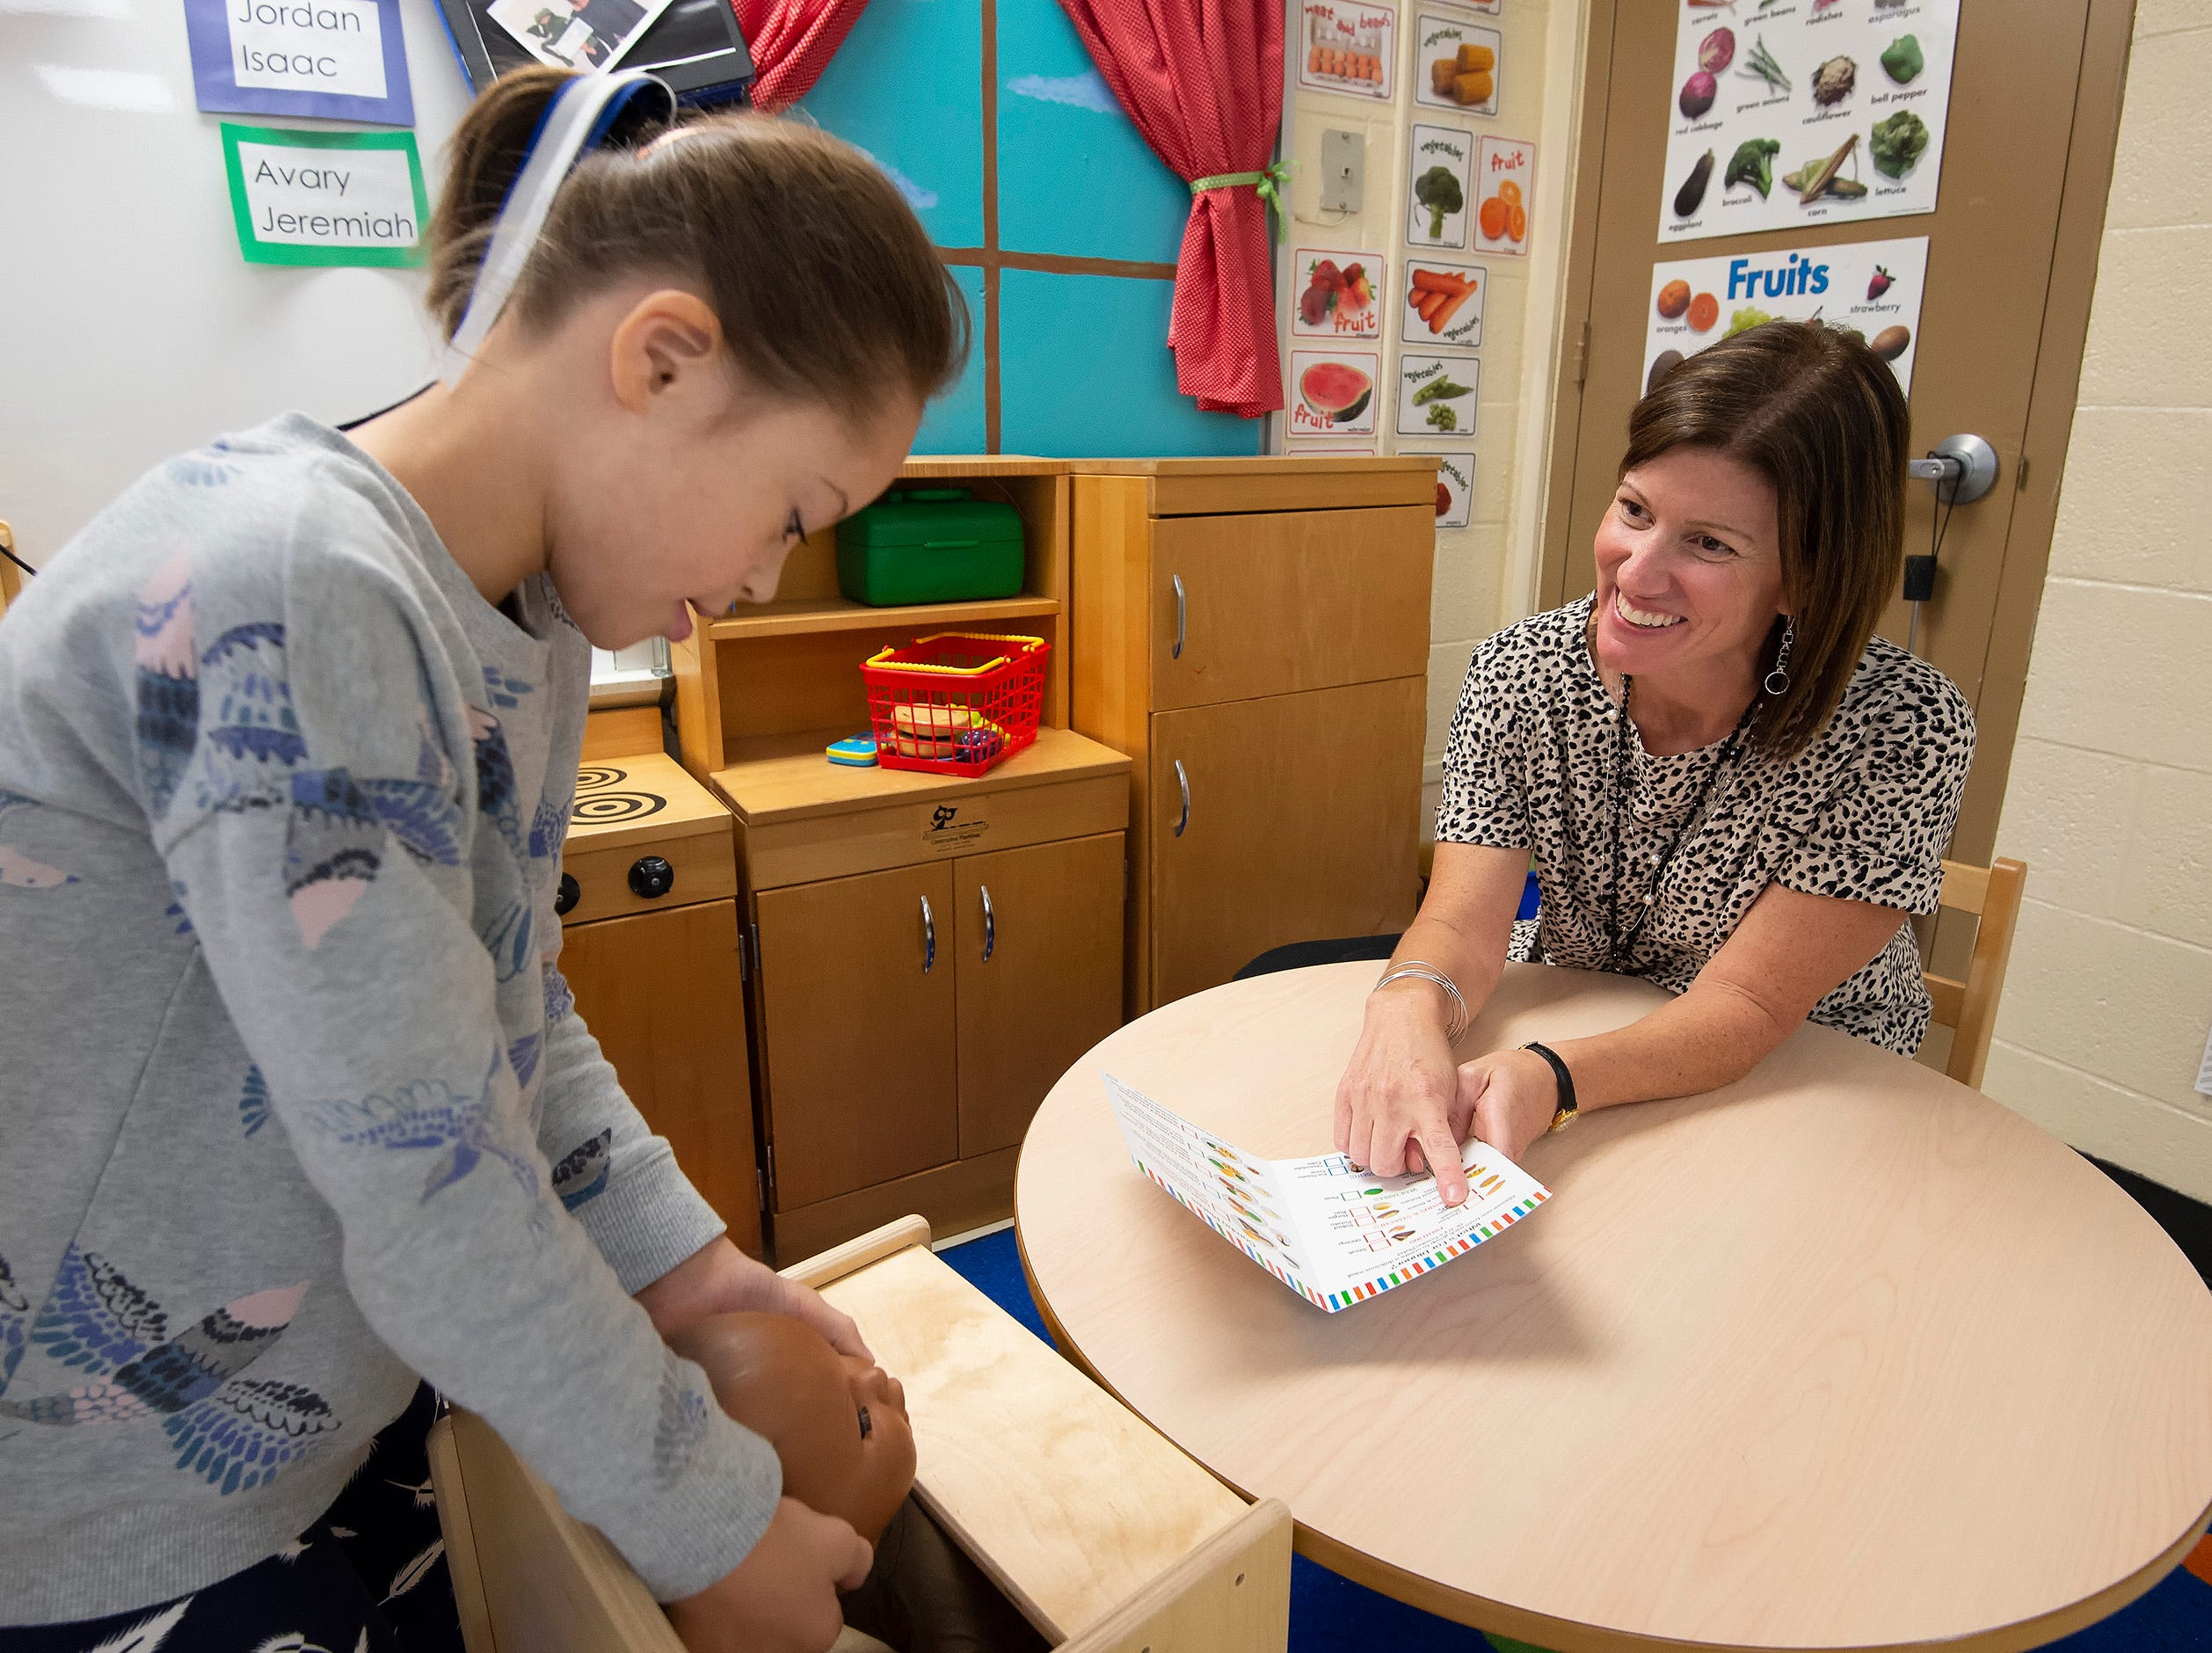 Delaware's 2019 Teacher of the Year Dana Bowe, who teaches kindergarten through second grade for the Sussex County Orthopedic Program at West Seaford Elementary Schol, works with second-grader Avary Cannon.